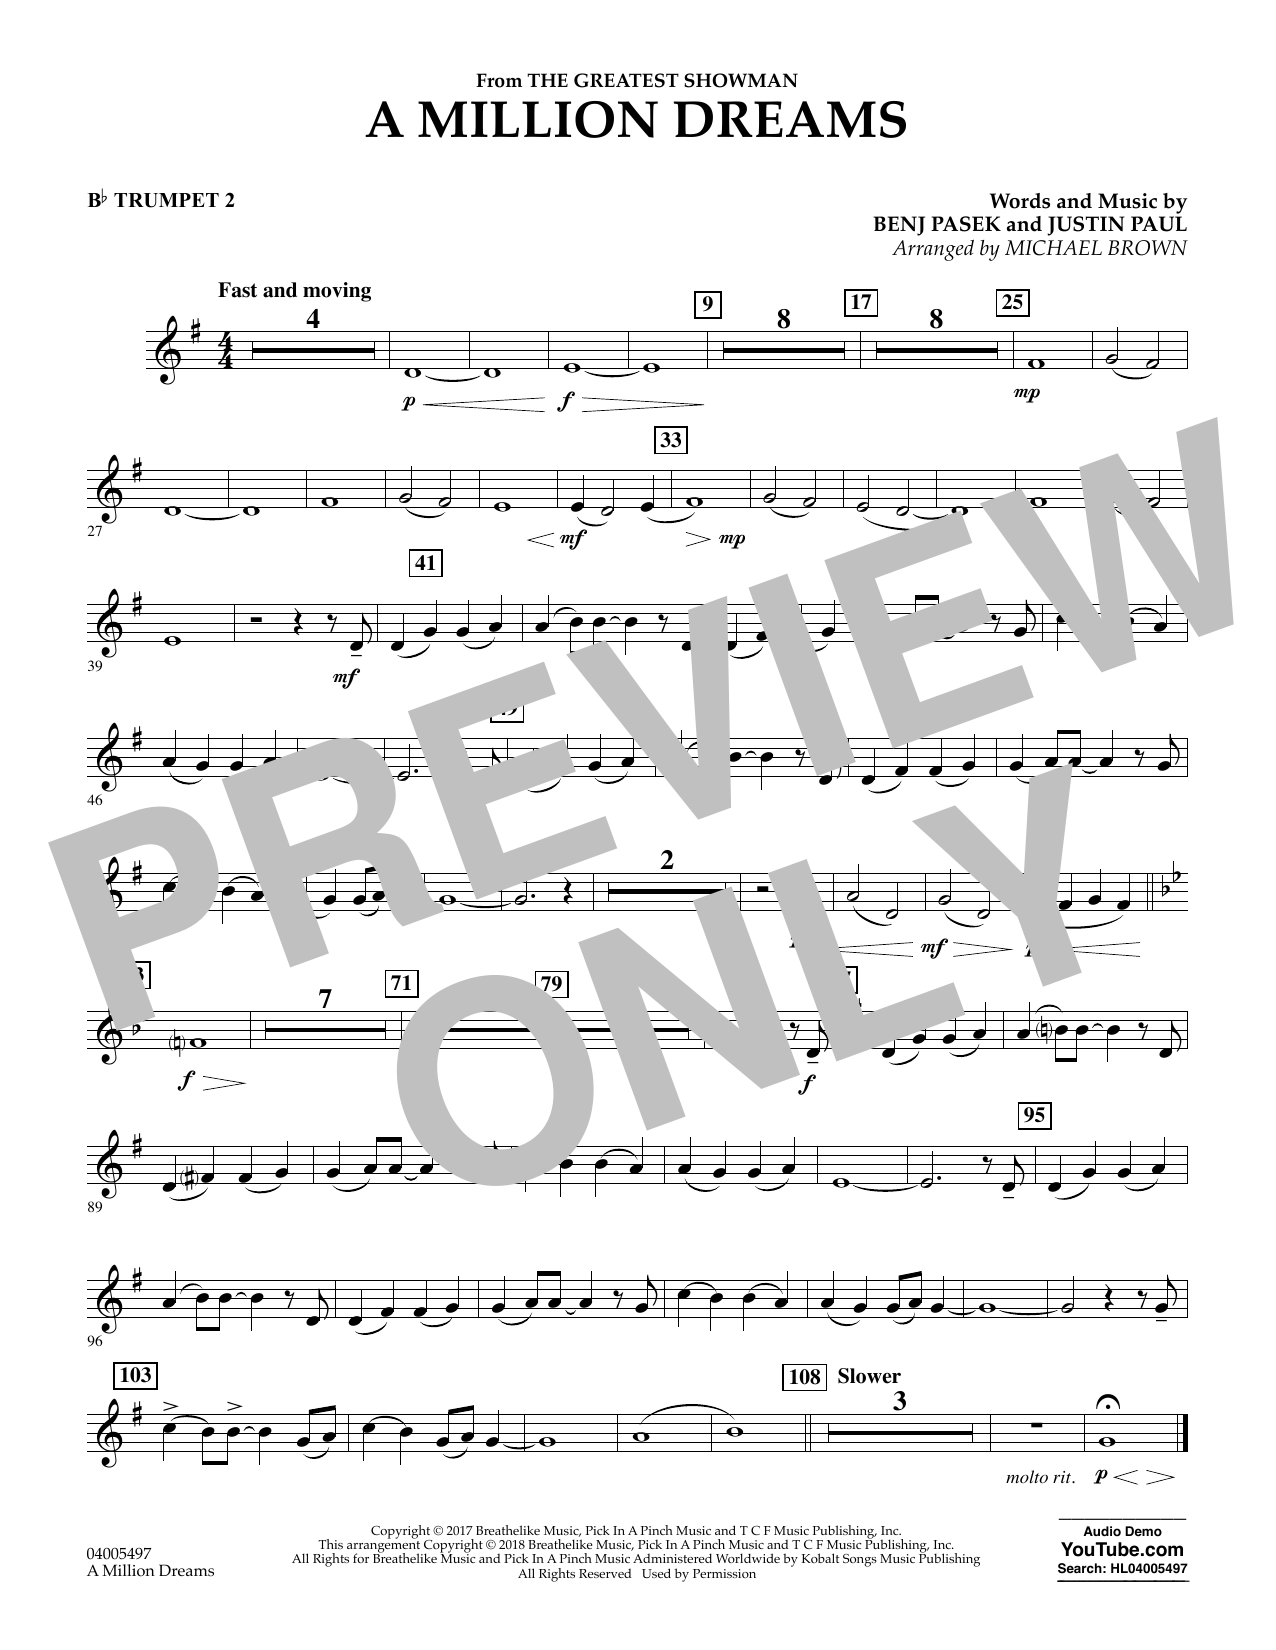 Pasek & Paul A Million Dreams (from The Greatest Showman) (arr. Michael Brown) - Bb Trumpet 2 sheet music notes and chords. Download Printable PDF.